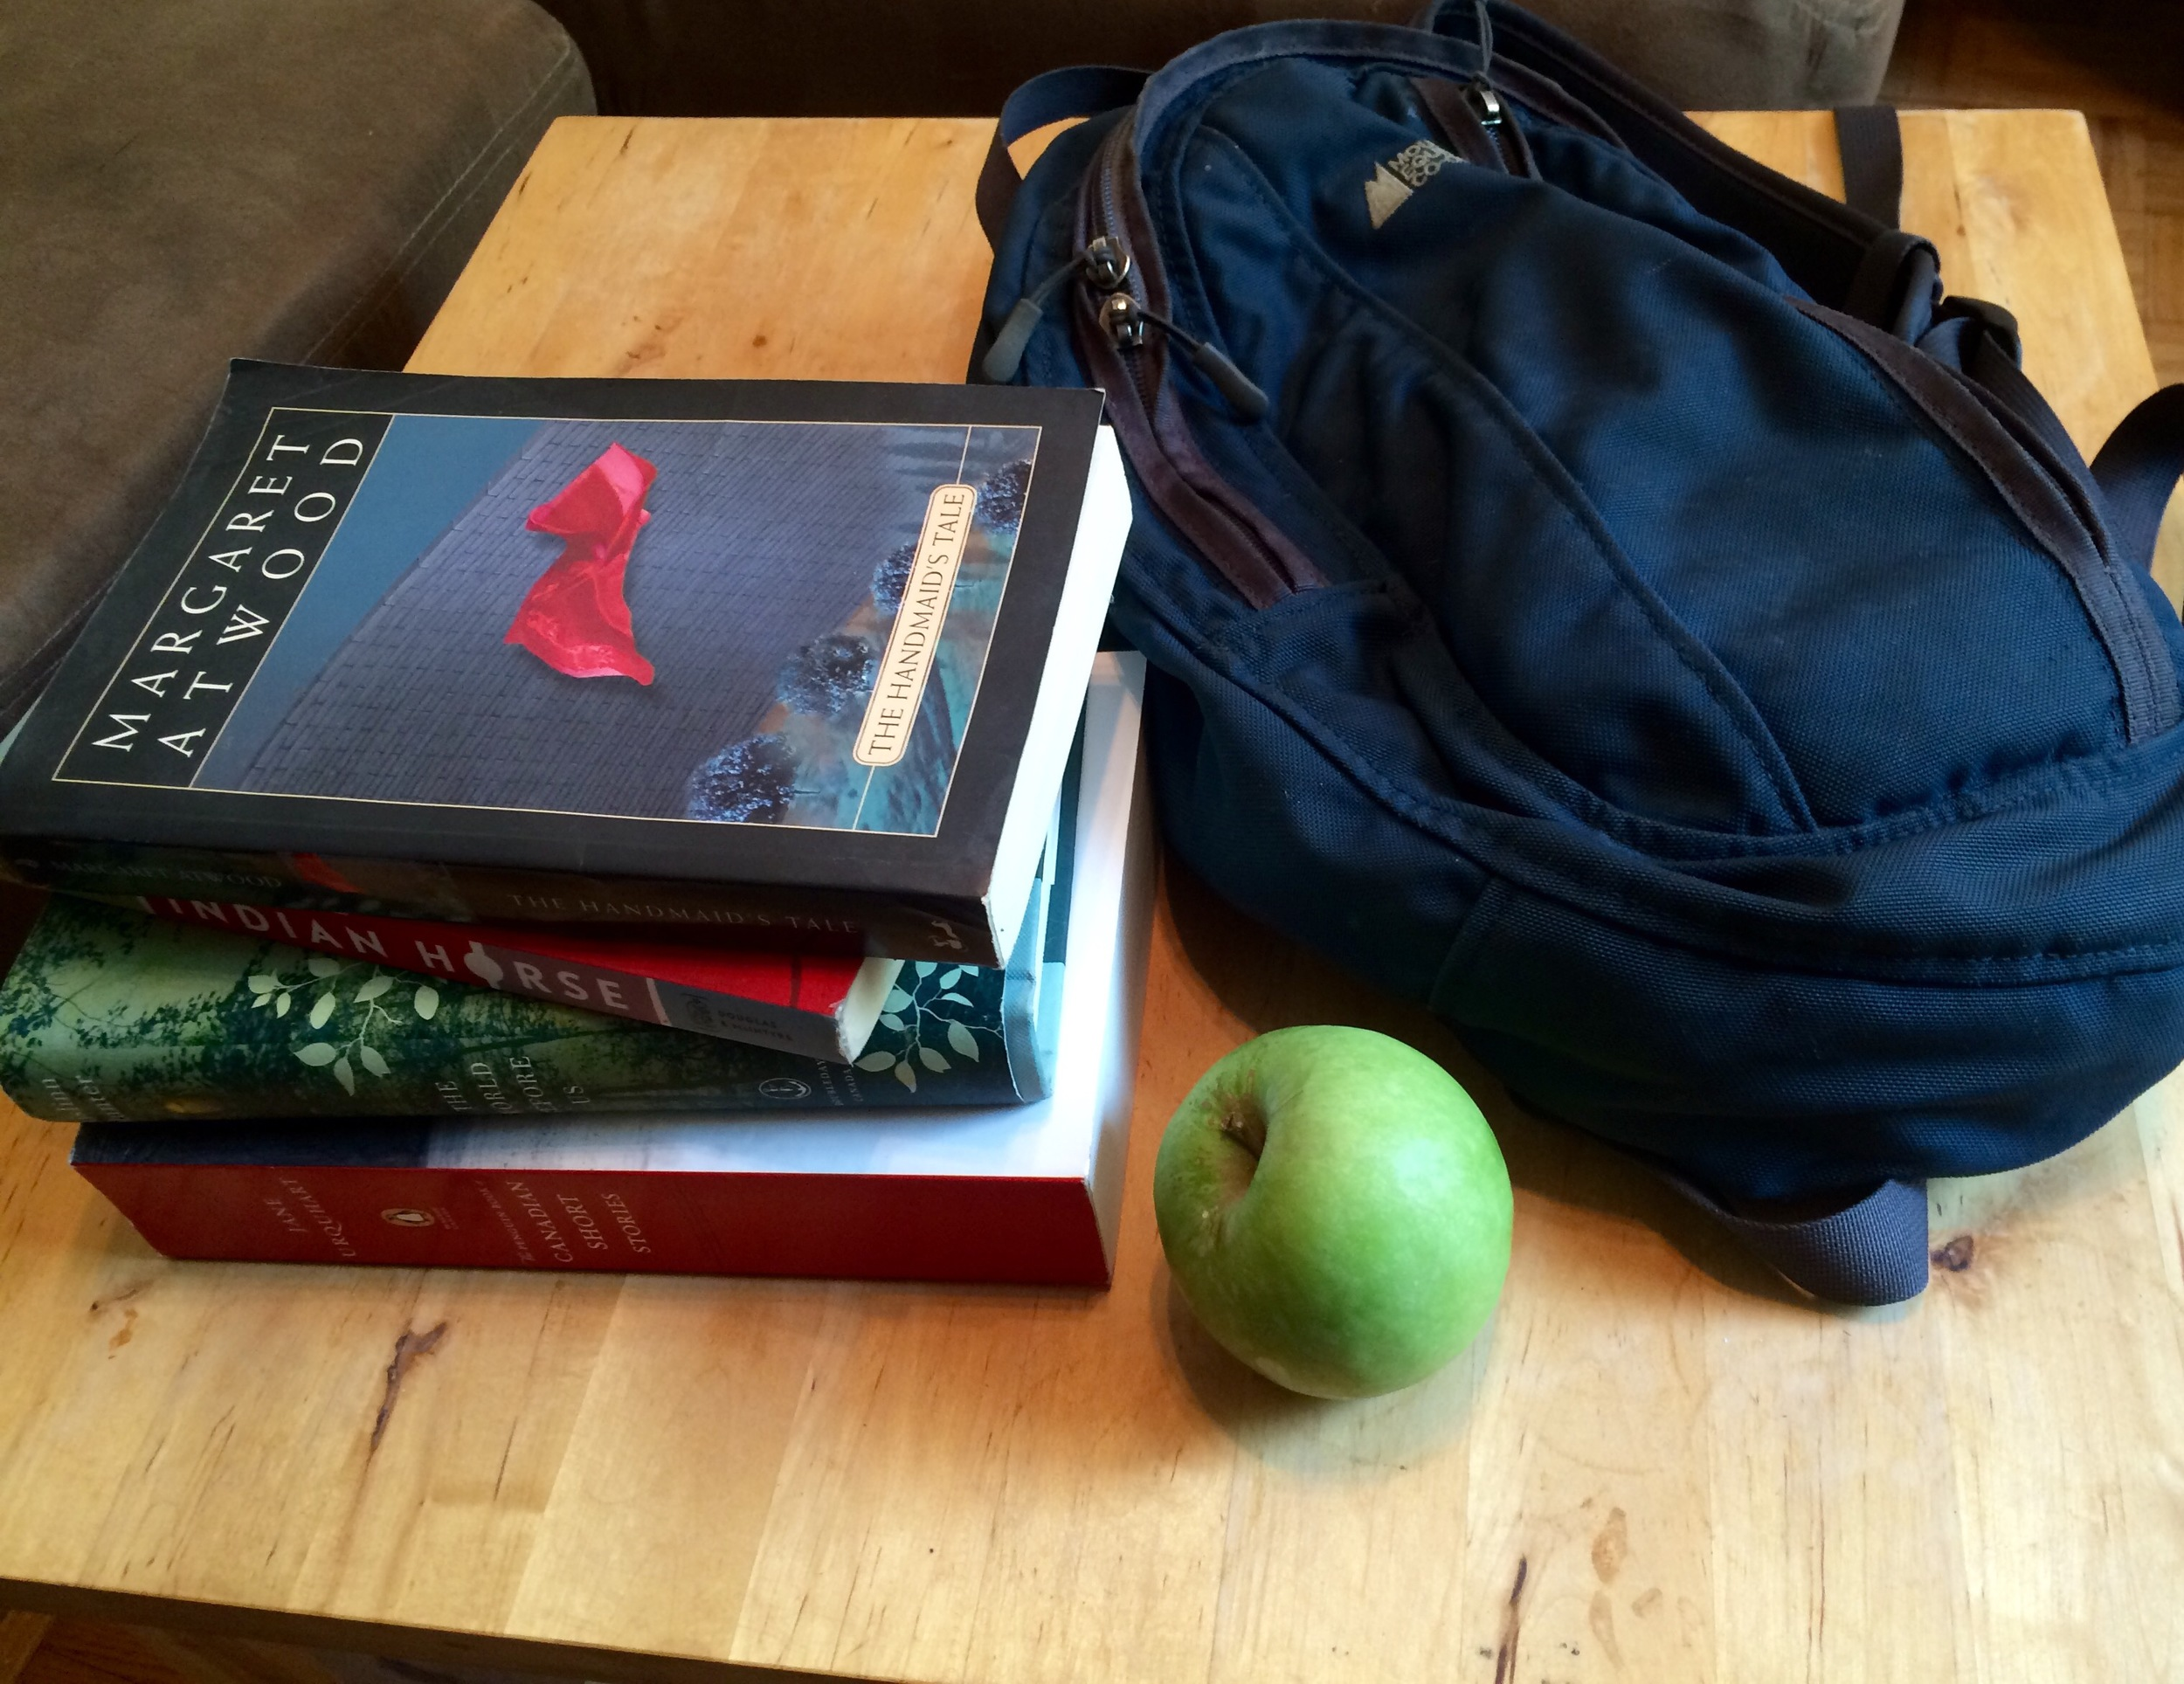 A back to school silver lining? At least there are still books.